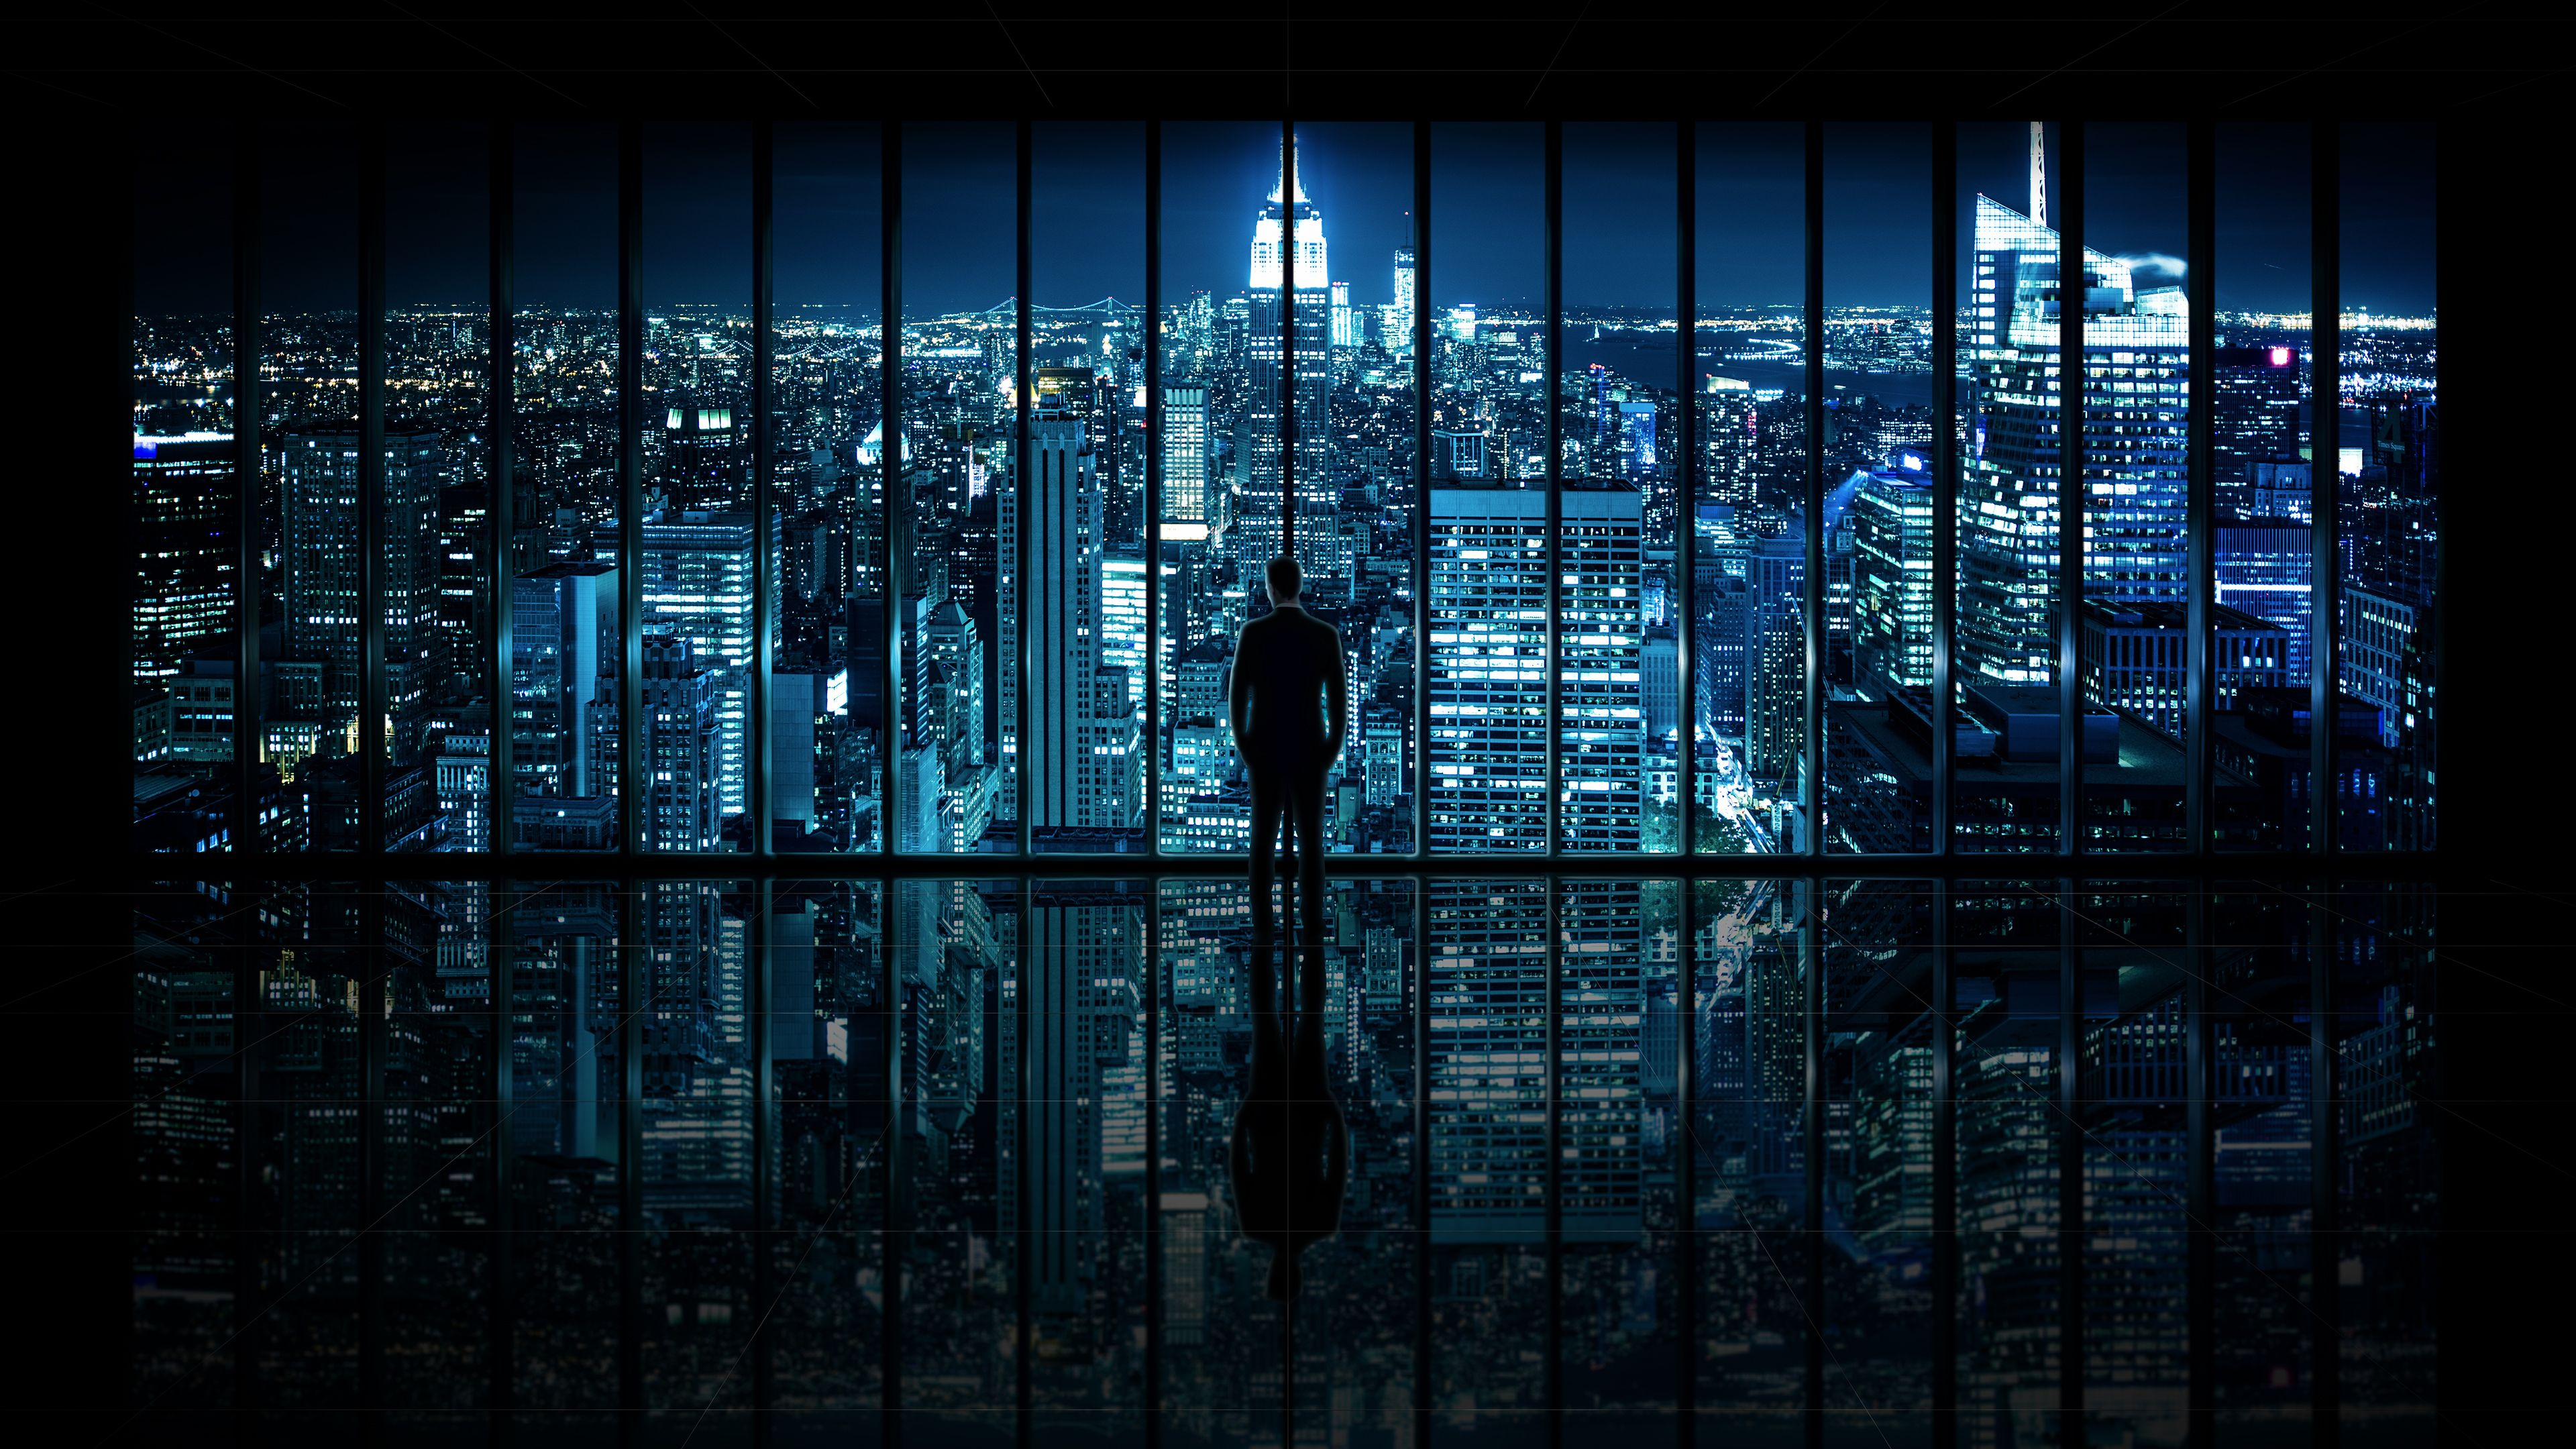 10 Gotham City 4k Wallpaper 4k Wallpaper Ultra Hd 4k Wallpapers Wish This Kind Of Scenery Ex City Wallpaper Wallpaper Windows 10 Dual Monitor Wallpaper